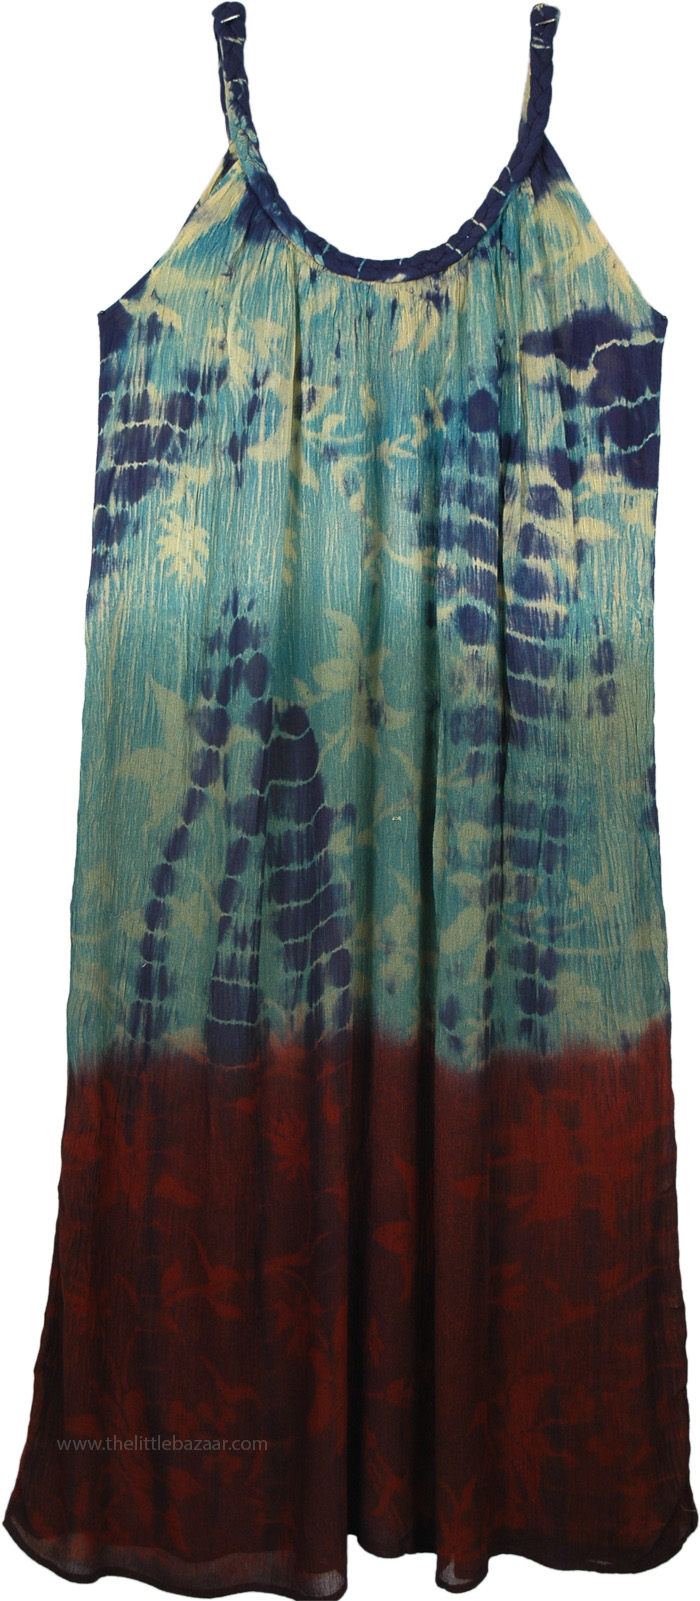 Water Waves Blue and Brick Red Tie Dye Dress